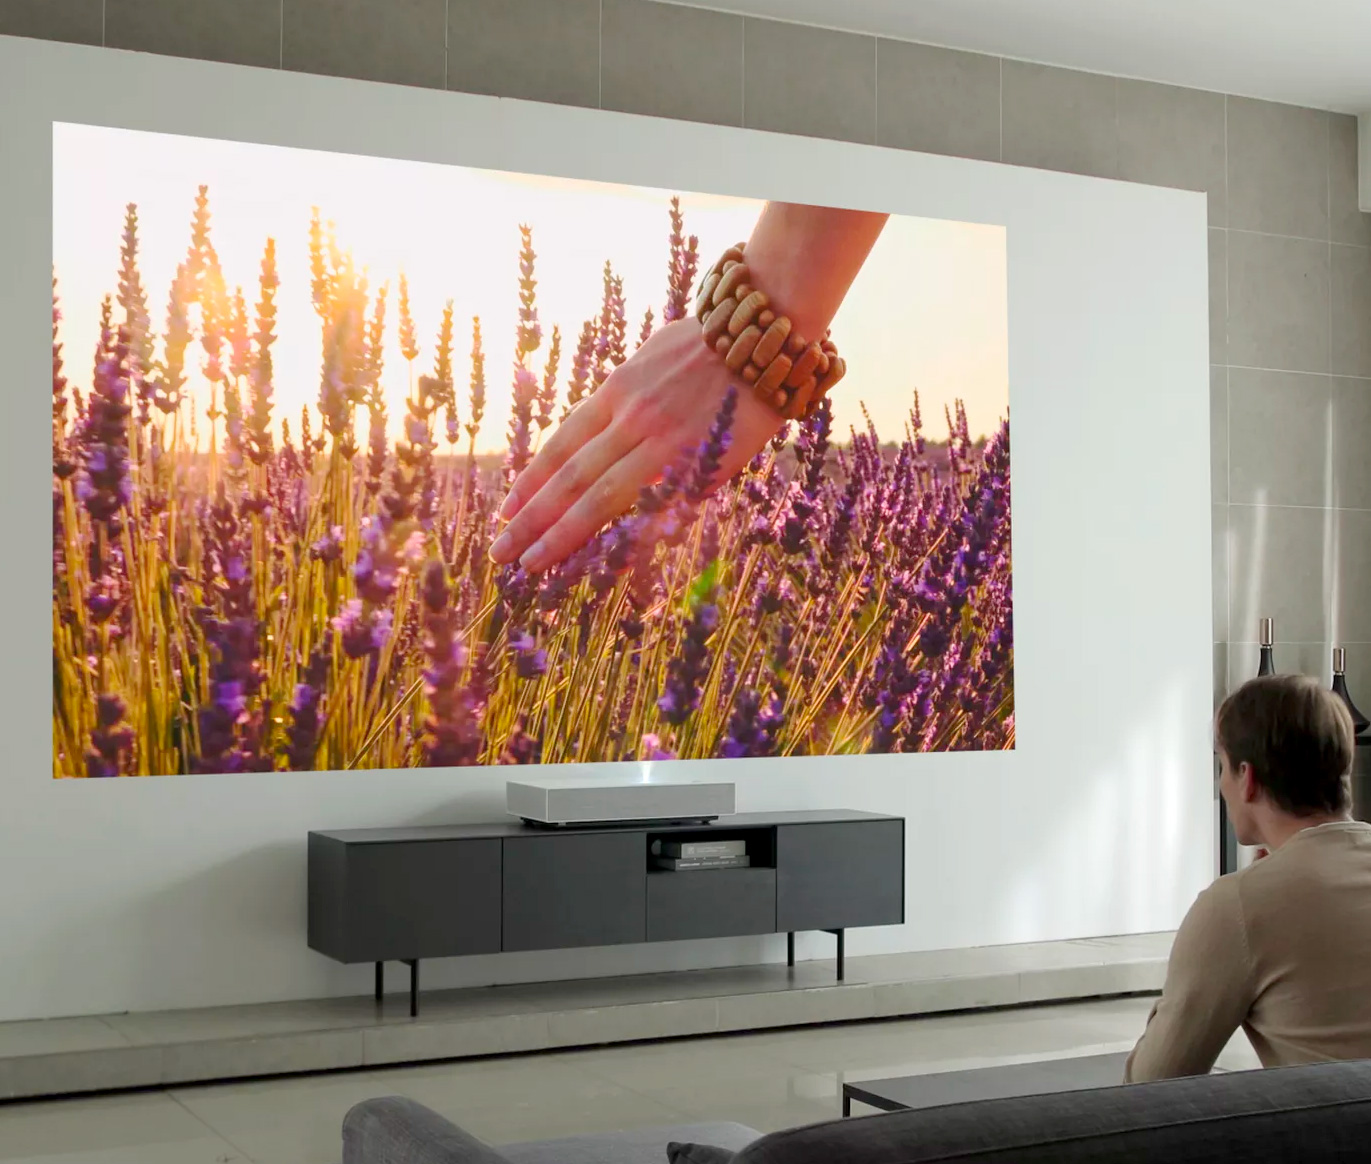 LG's Latest Short Throw 4K Laser Projector Creates a Huge HD image at werd.com